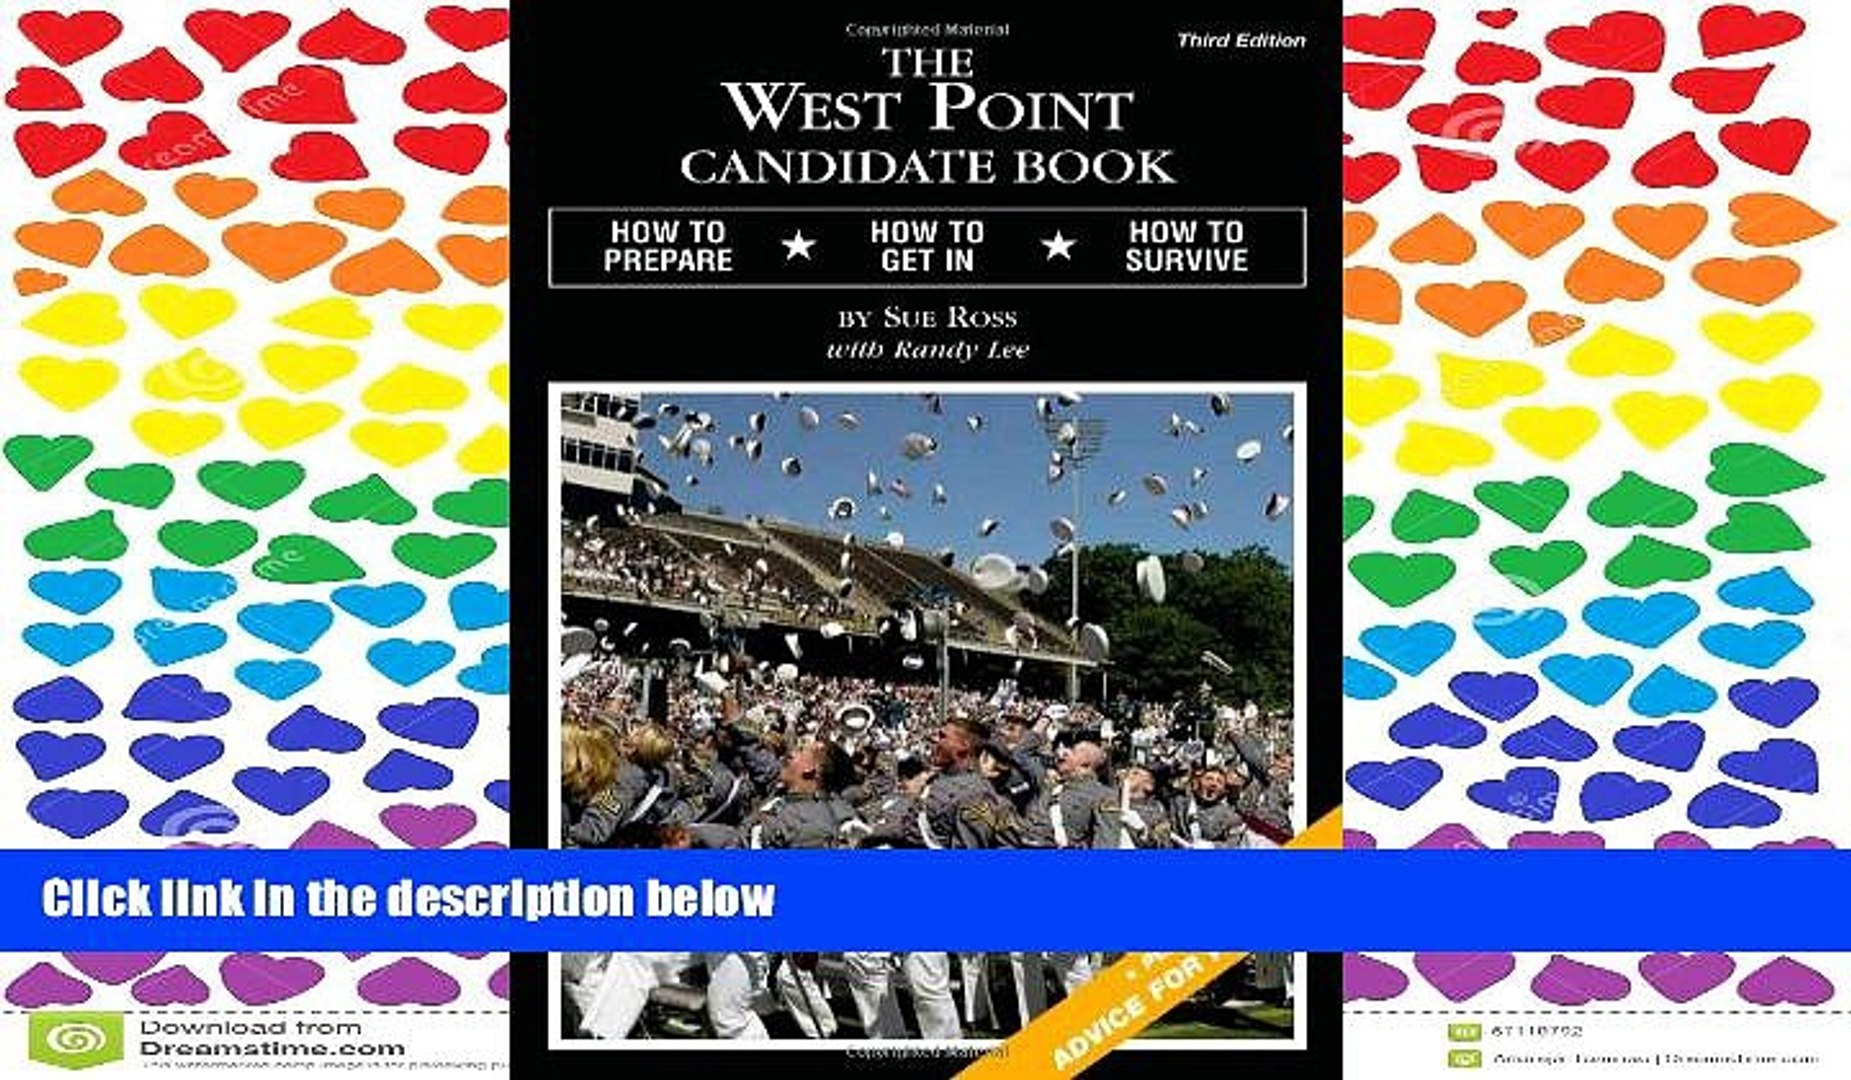 FAVORIT BOOK  The West Point Candidate Book: How to Prepare, How to Get In, How to Survive READ